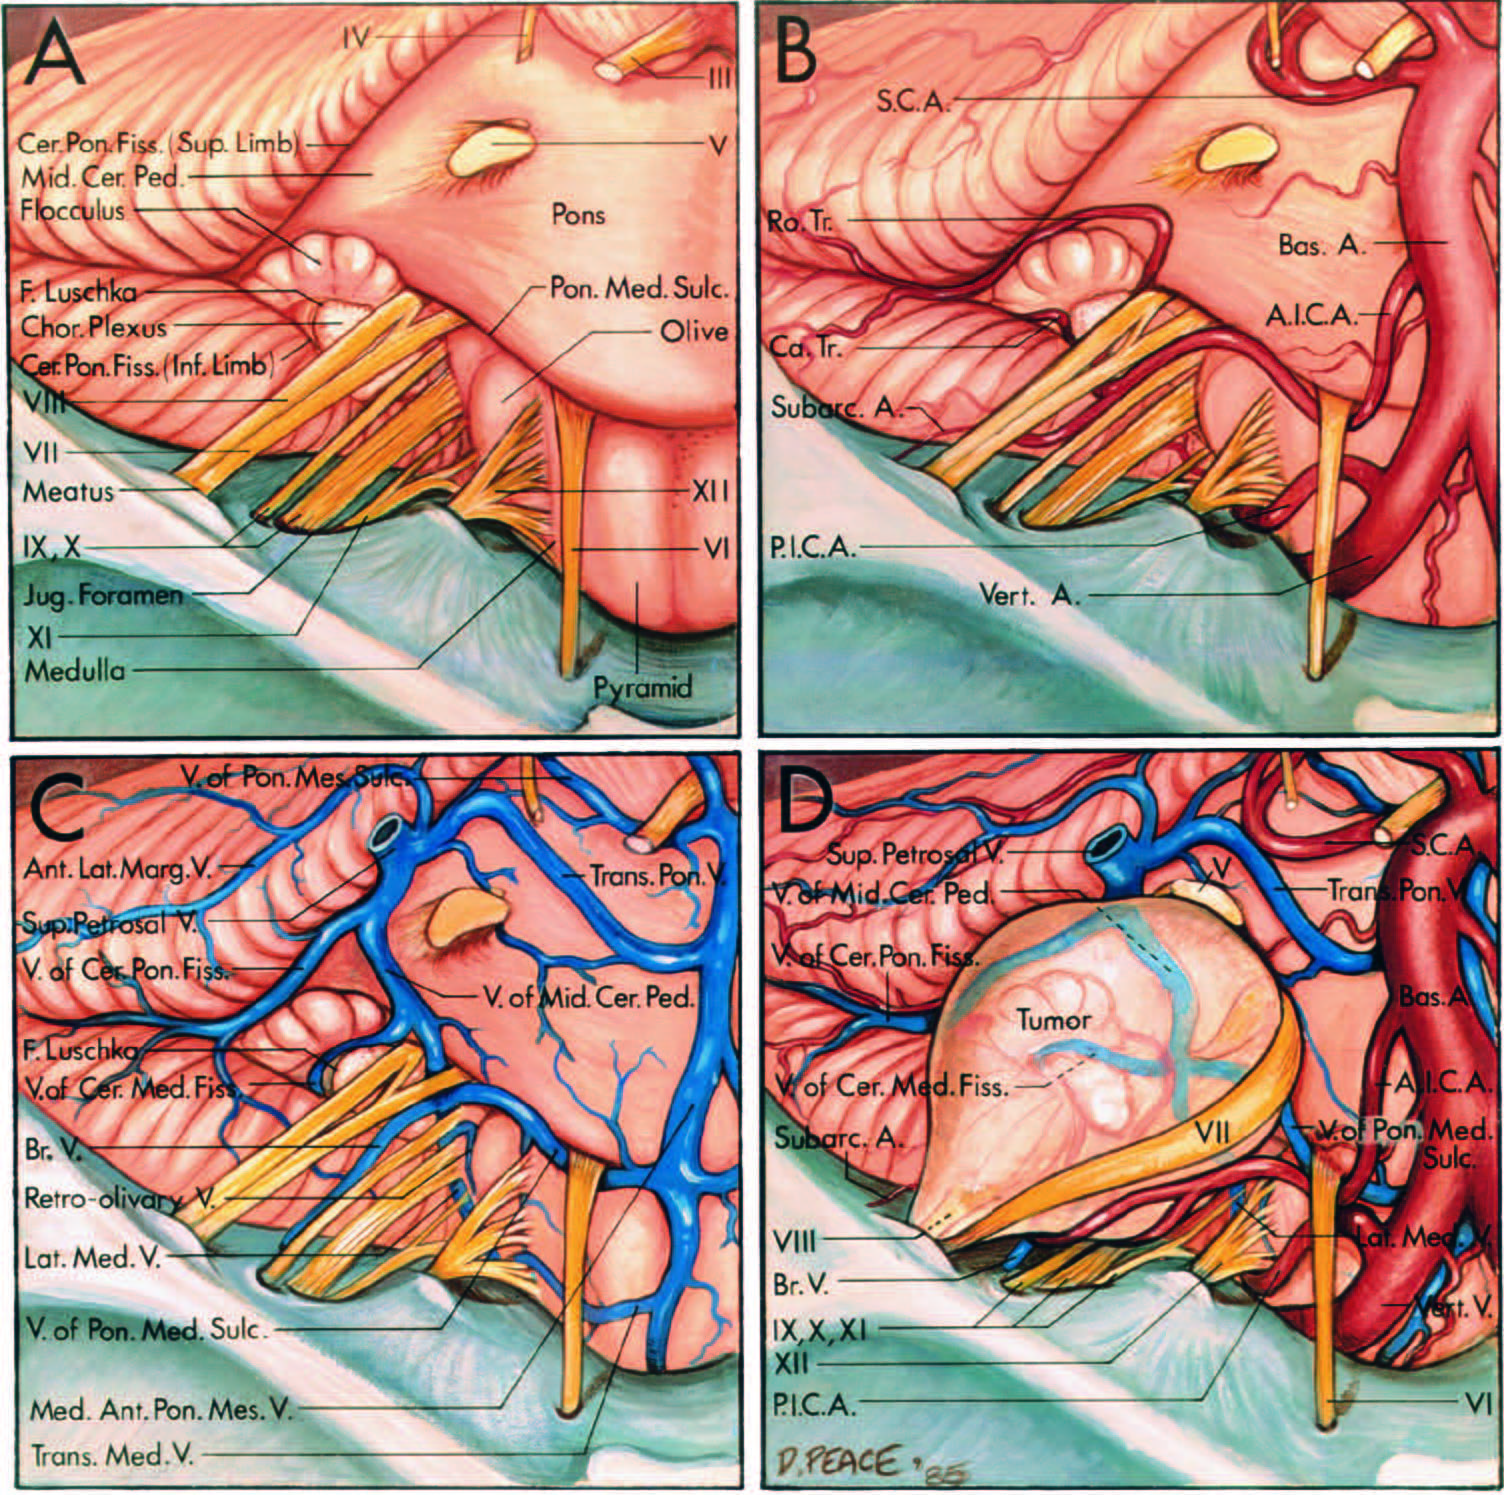 FIGURE 4.22. Neurovascular relationships on the brainstem side of anacoustic neuroma. Anterosuperiorviews. A, neural relationships. Thecerebrum and tentorium cerebellihave been removed, and the trigeminal, trochlear, and oculomotor nerveshave been divided to allow the brainstem to be displaced posteriorly toexpose the cerebellopontine anglefrom above. The facial and vestibulocochlear nerves arise at the lateralend of the pontomedullary sulcusanterior to the flocculus, rostral to theglossopharyngeal, vagus, and accessory nerves, and anterosuperior to thechoroid plexus protruding from theforamen of Luschka. The cerebellopontine fissure, formed where thecerebellum wraps around the lateralside of the pons and middle cerebellarpeduncle, has superior and inferiorlimbs. The foramen of Luschka opensinto the inferior limb near the facialand vestibulocochlear nerves. B, arterial relationships. The AICA arisesfrom the basilar artery, passes belowthe facial and vestibulocochlearnerves, gives rise to the subarcuateartery, and divides into a rostral and acaudal trunk. The rostral trunk passesabove the flocculus to course on themiddle cerebellar peduncle, and thecaudal trunk supplies the area below the flocculus. C, venous relationships. The veins converging on the junction of the facial nerve with the brainstem are the lateral medullary and retro-olivary veins, and the veins of the pontomedullary sulcus, cerebellomedullary fissure, and middle cerebellar peduncle. The median anterior pontomesencephalic vein ascends on the anterior surface of the brainstem, and the transverse pontine and transverse medullary veins cross the pons and medulla. The vein of the cerebellopontine fissure passes above the flocculus. The transverse pontine vein and the veins of the middle cerebellar peduncle and cerebellopontine fissure join to form one of the superior petrosal veins that empty into the superior petrosal sinus. A bridging vein passes from the side of the brainstem to the jugular foramen. T